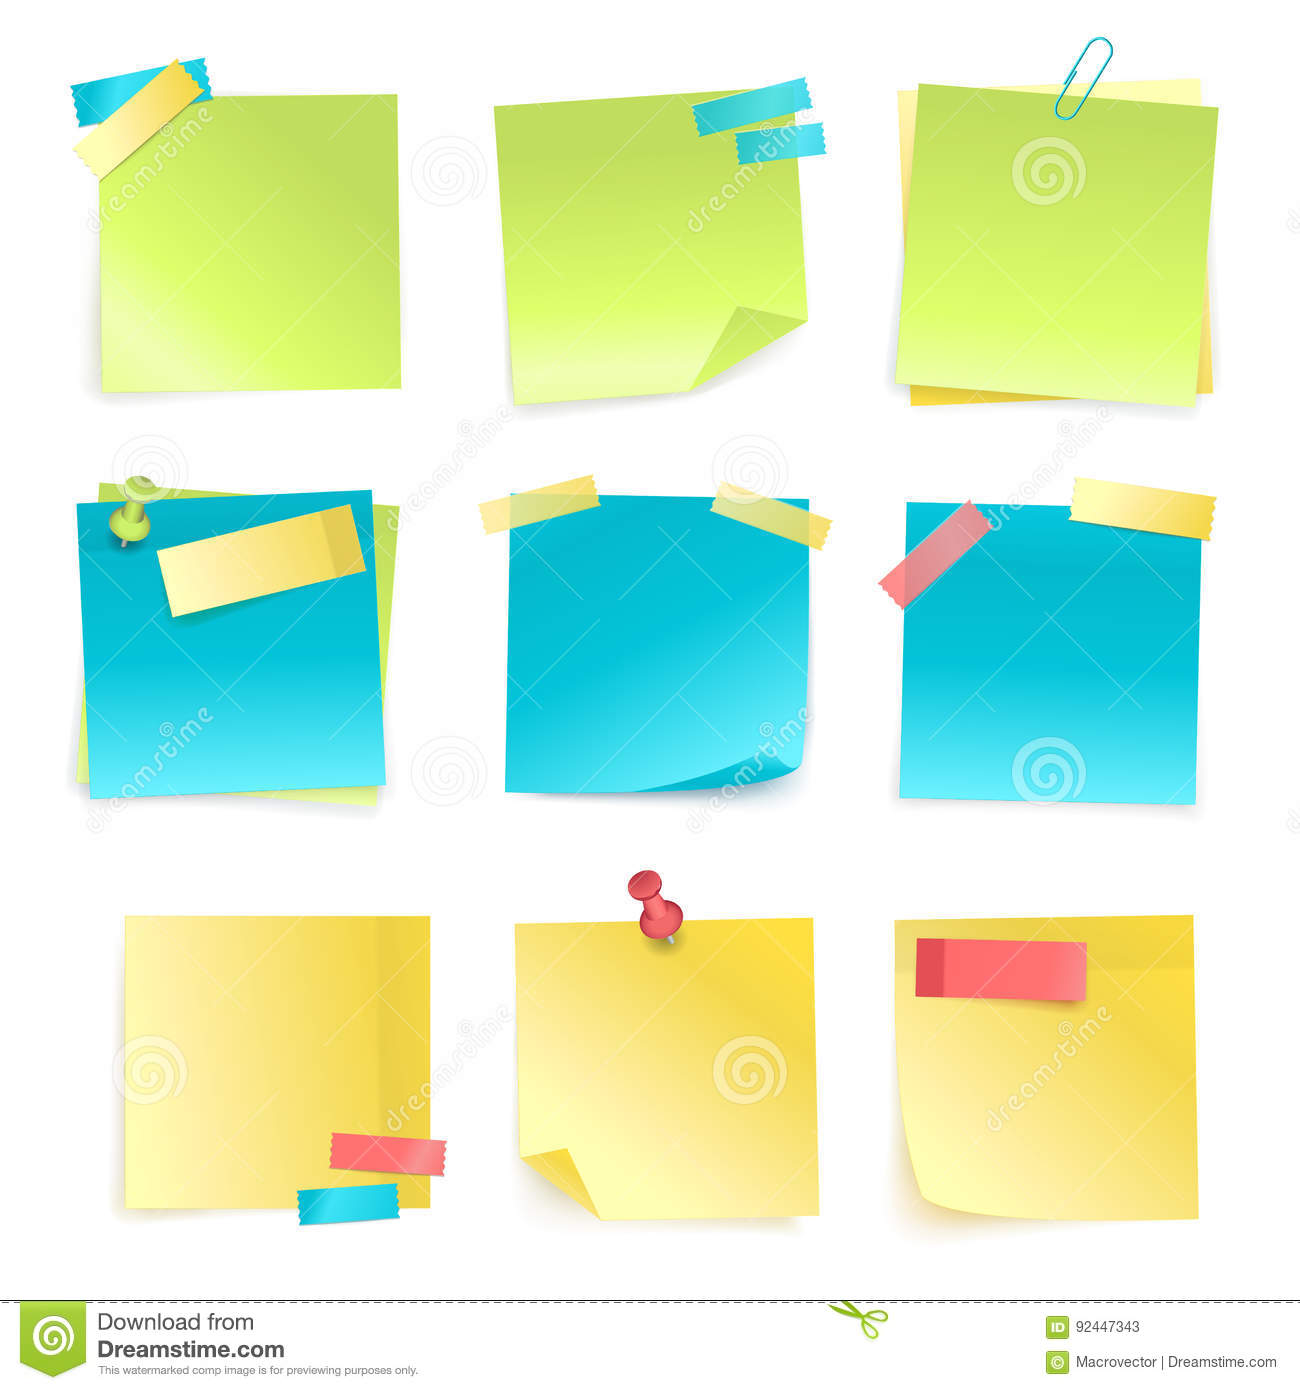 Free vector graphic sticky note note info paper free image on - Royalty Free Vector Sticky Notes Set Stock Vector